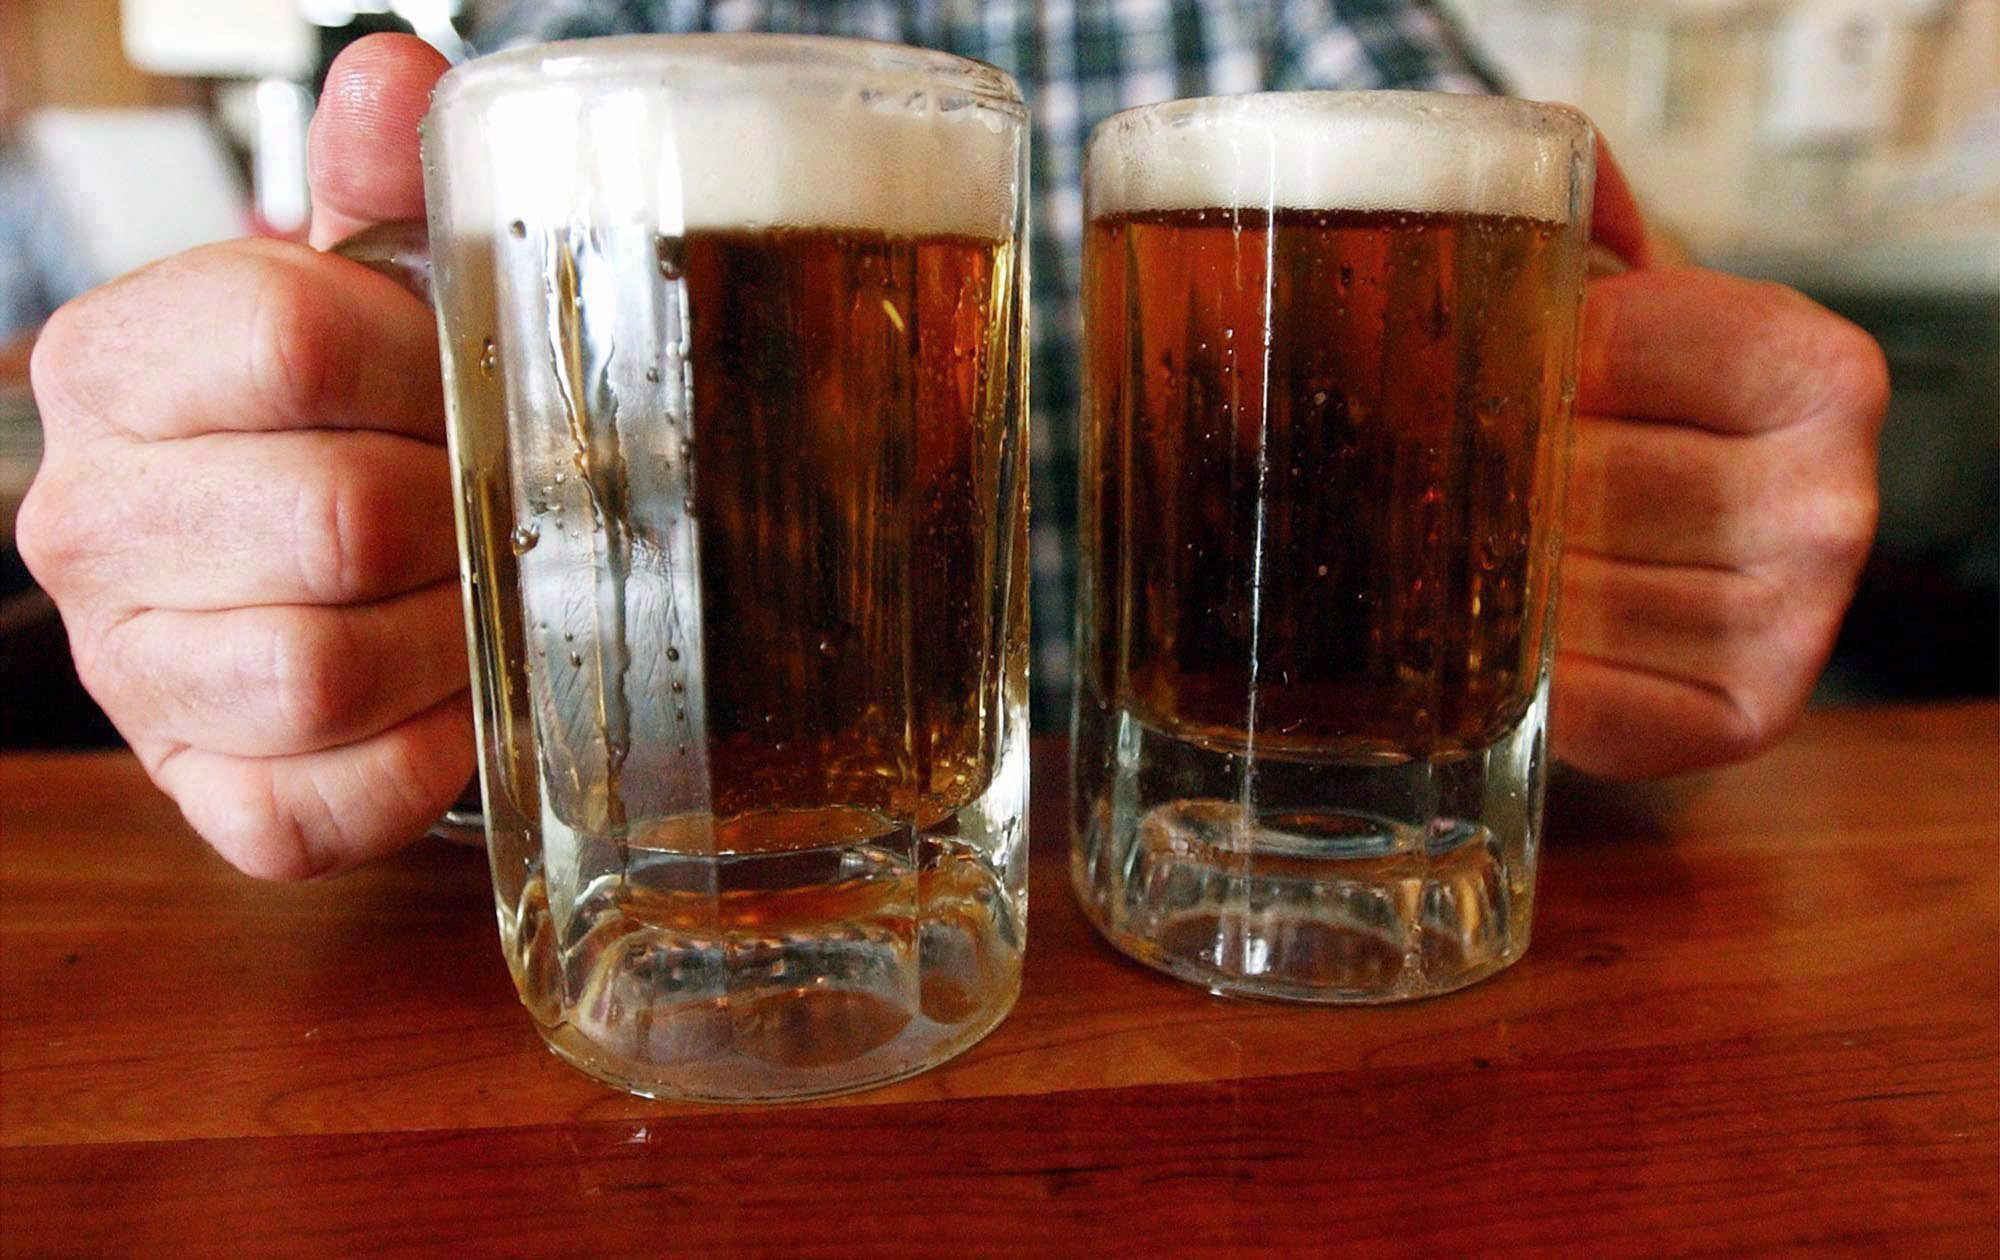 Ontario Premier Doug Ford announces 'Buck-a-Beer' plan